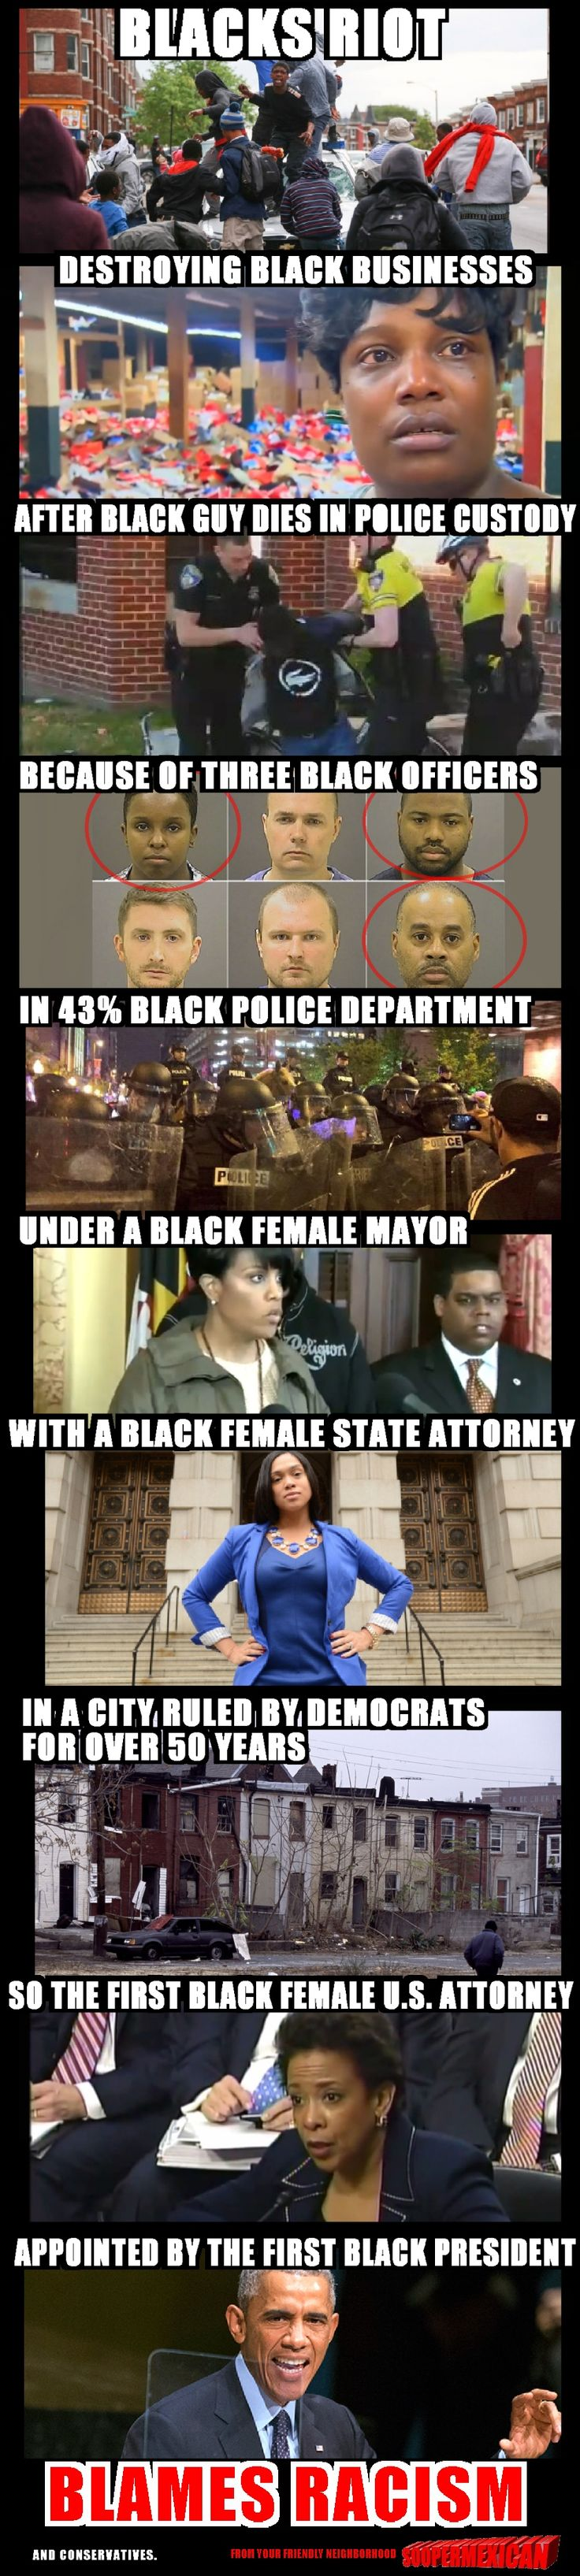 Riots in Baltimore explained WTF